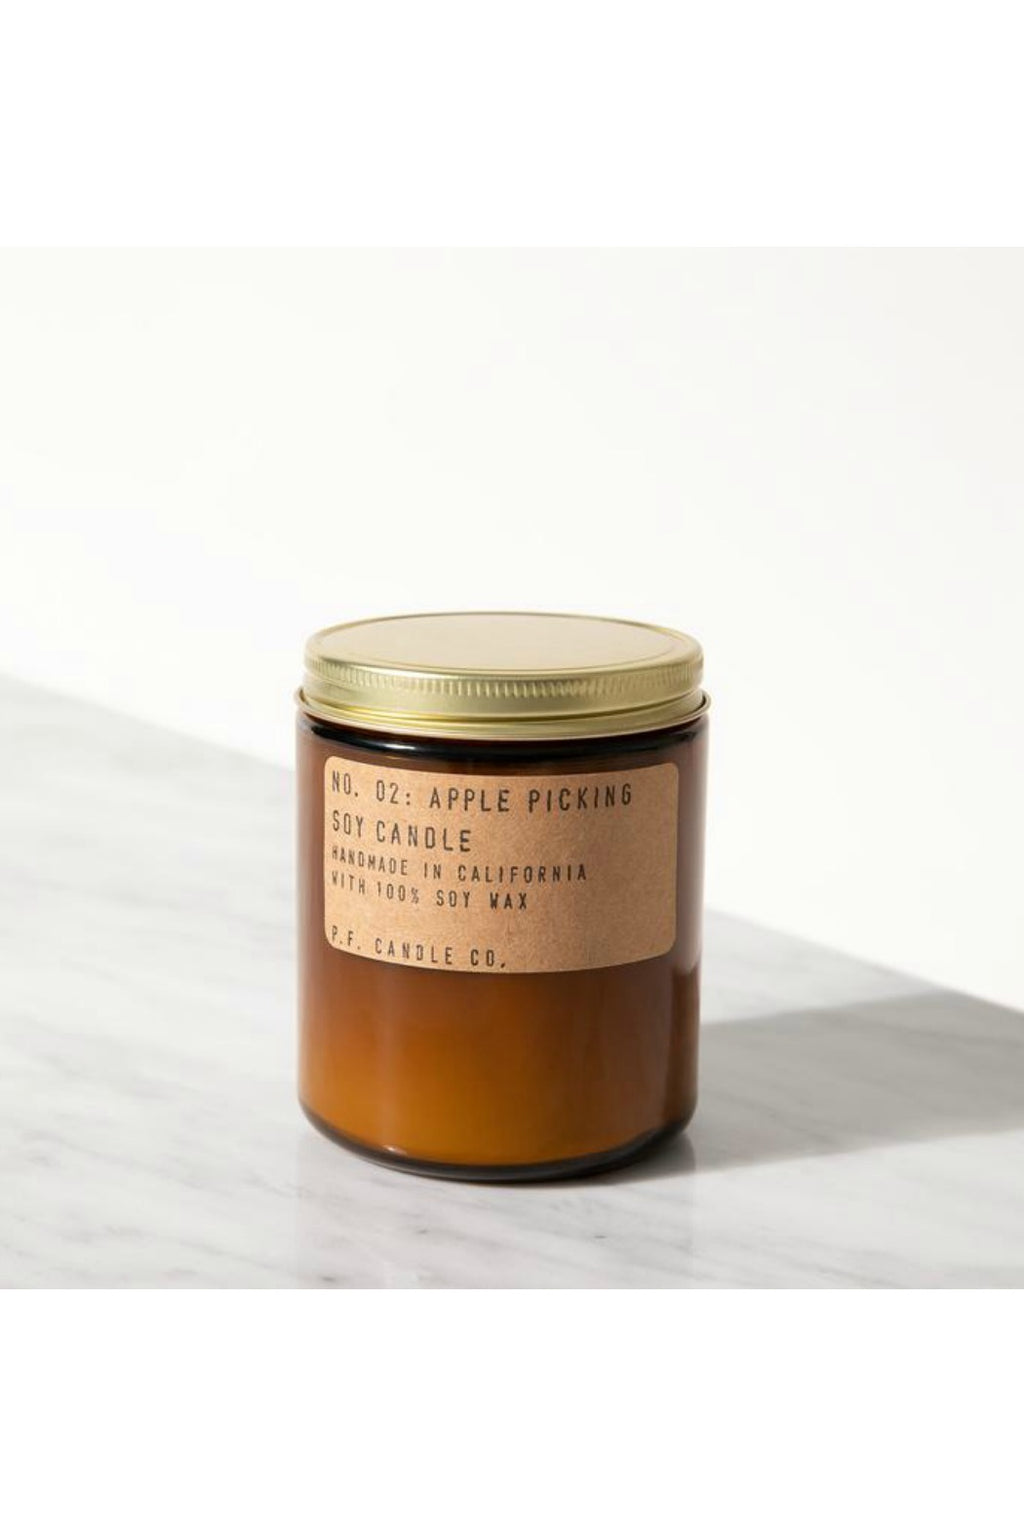 P.F. Candle Co. Standard Soy Candle - Apple Picking